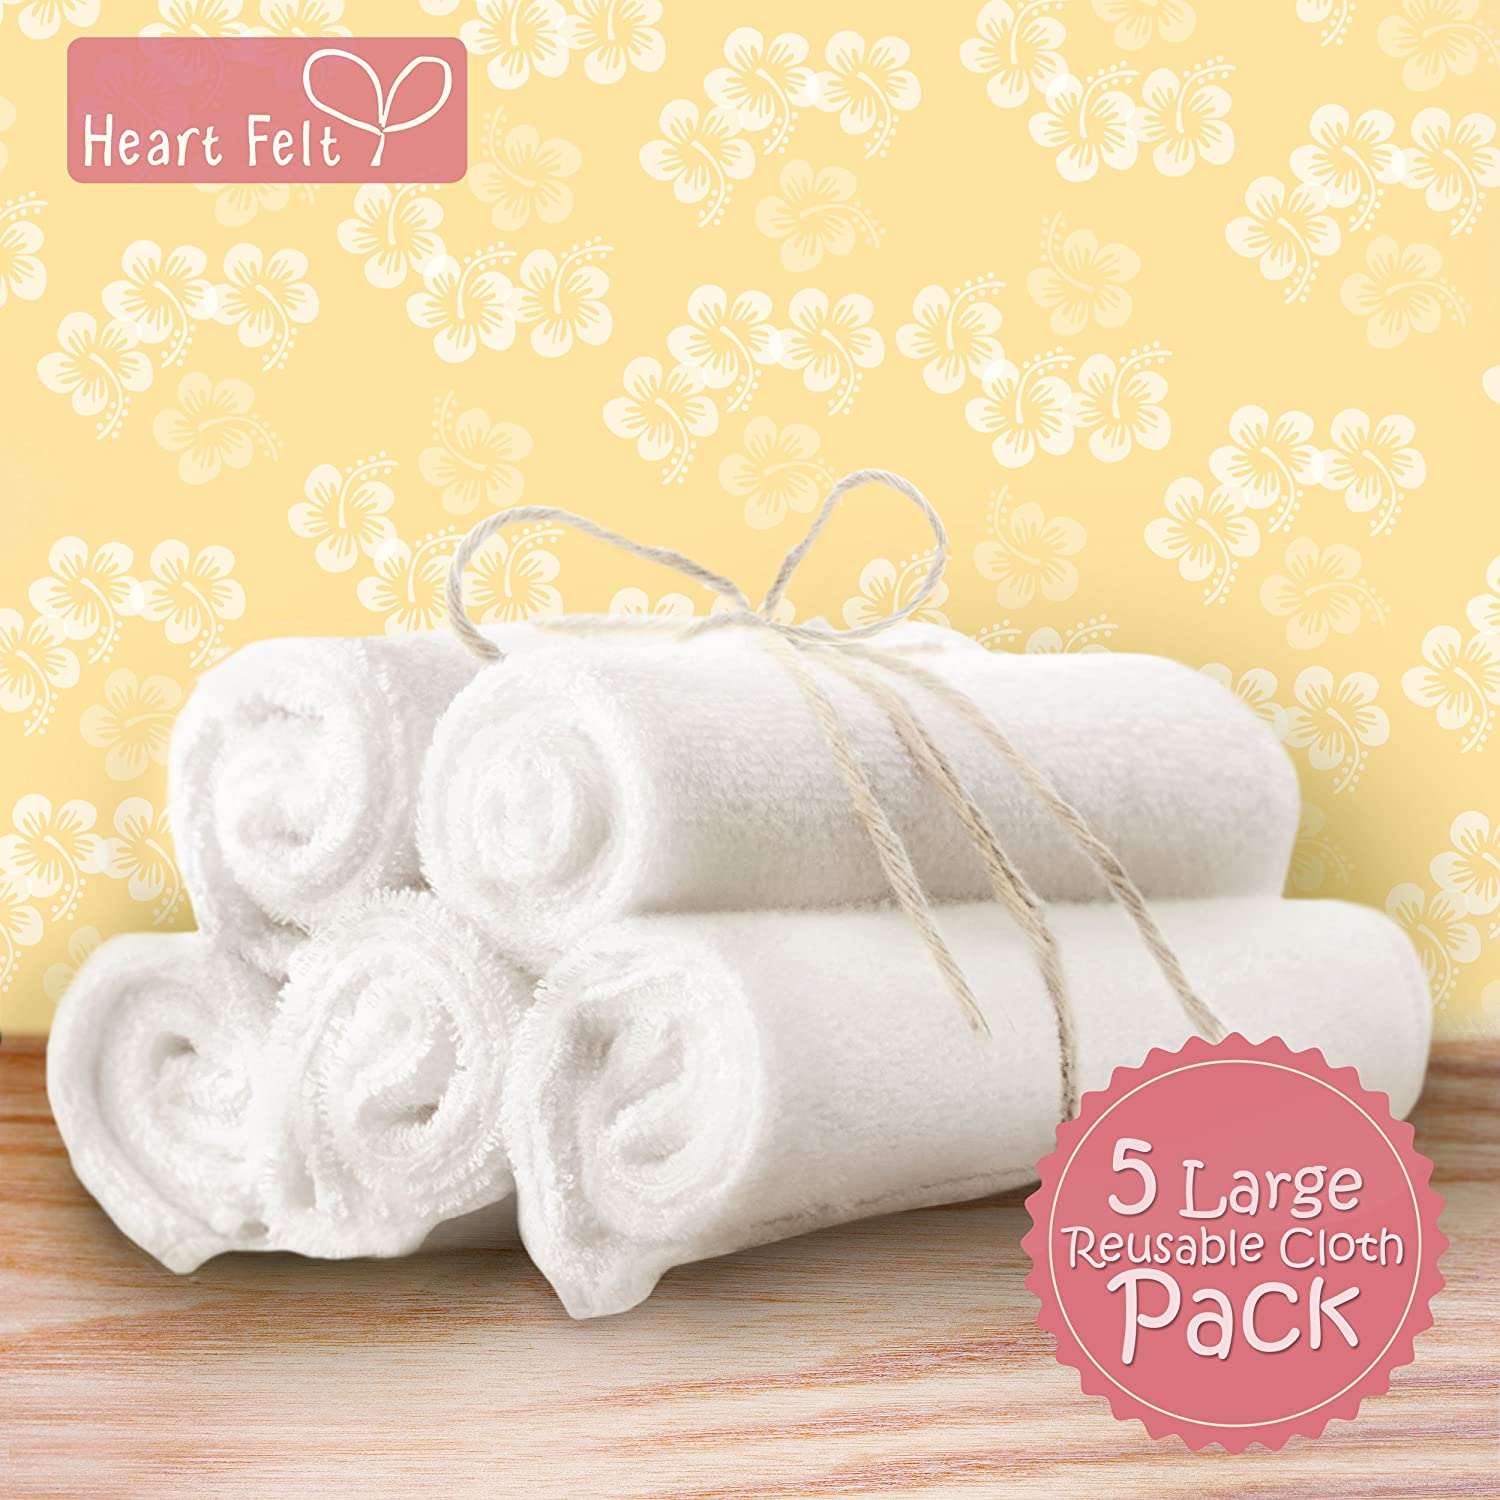 Amazon Heart Felt Natural Baby Wipes 5 Extra large